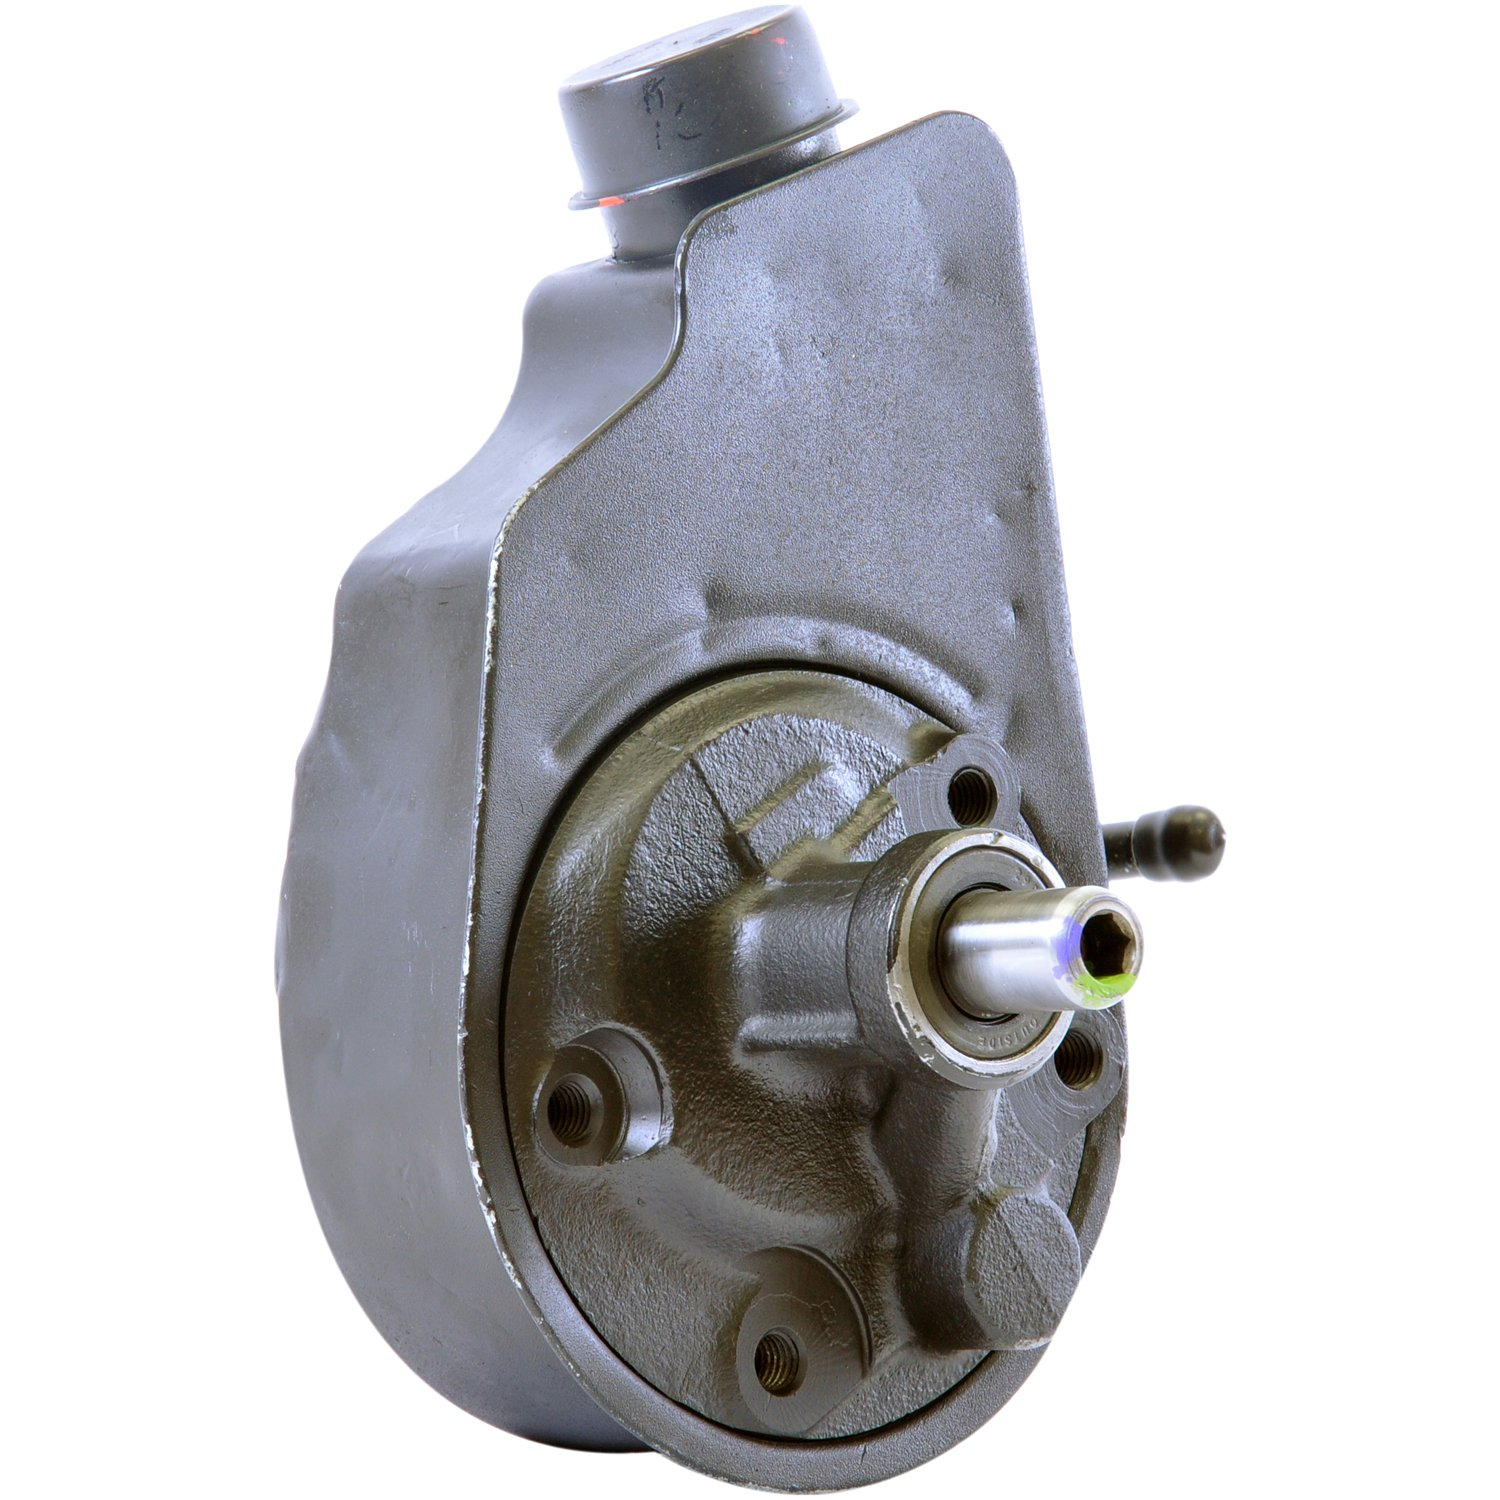 Remanufactured ACDelco 36P1397 Professional Power Steering Pump